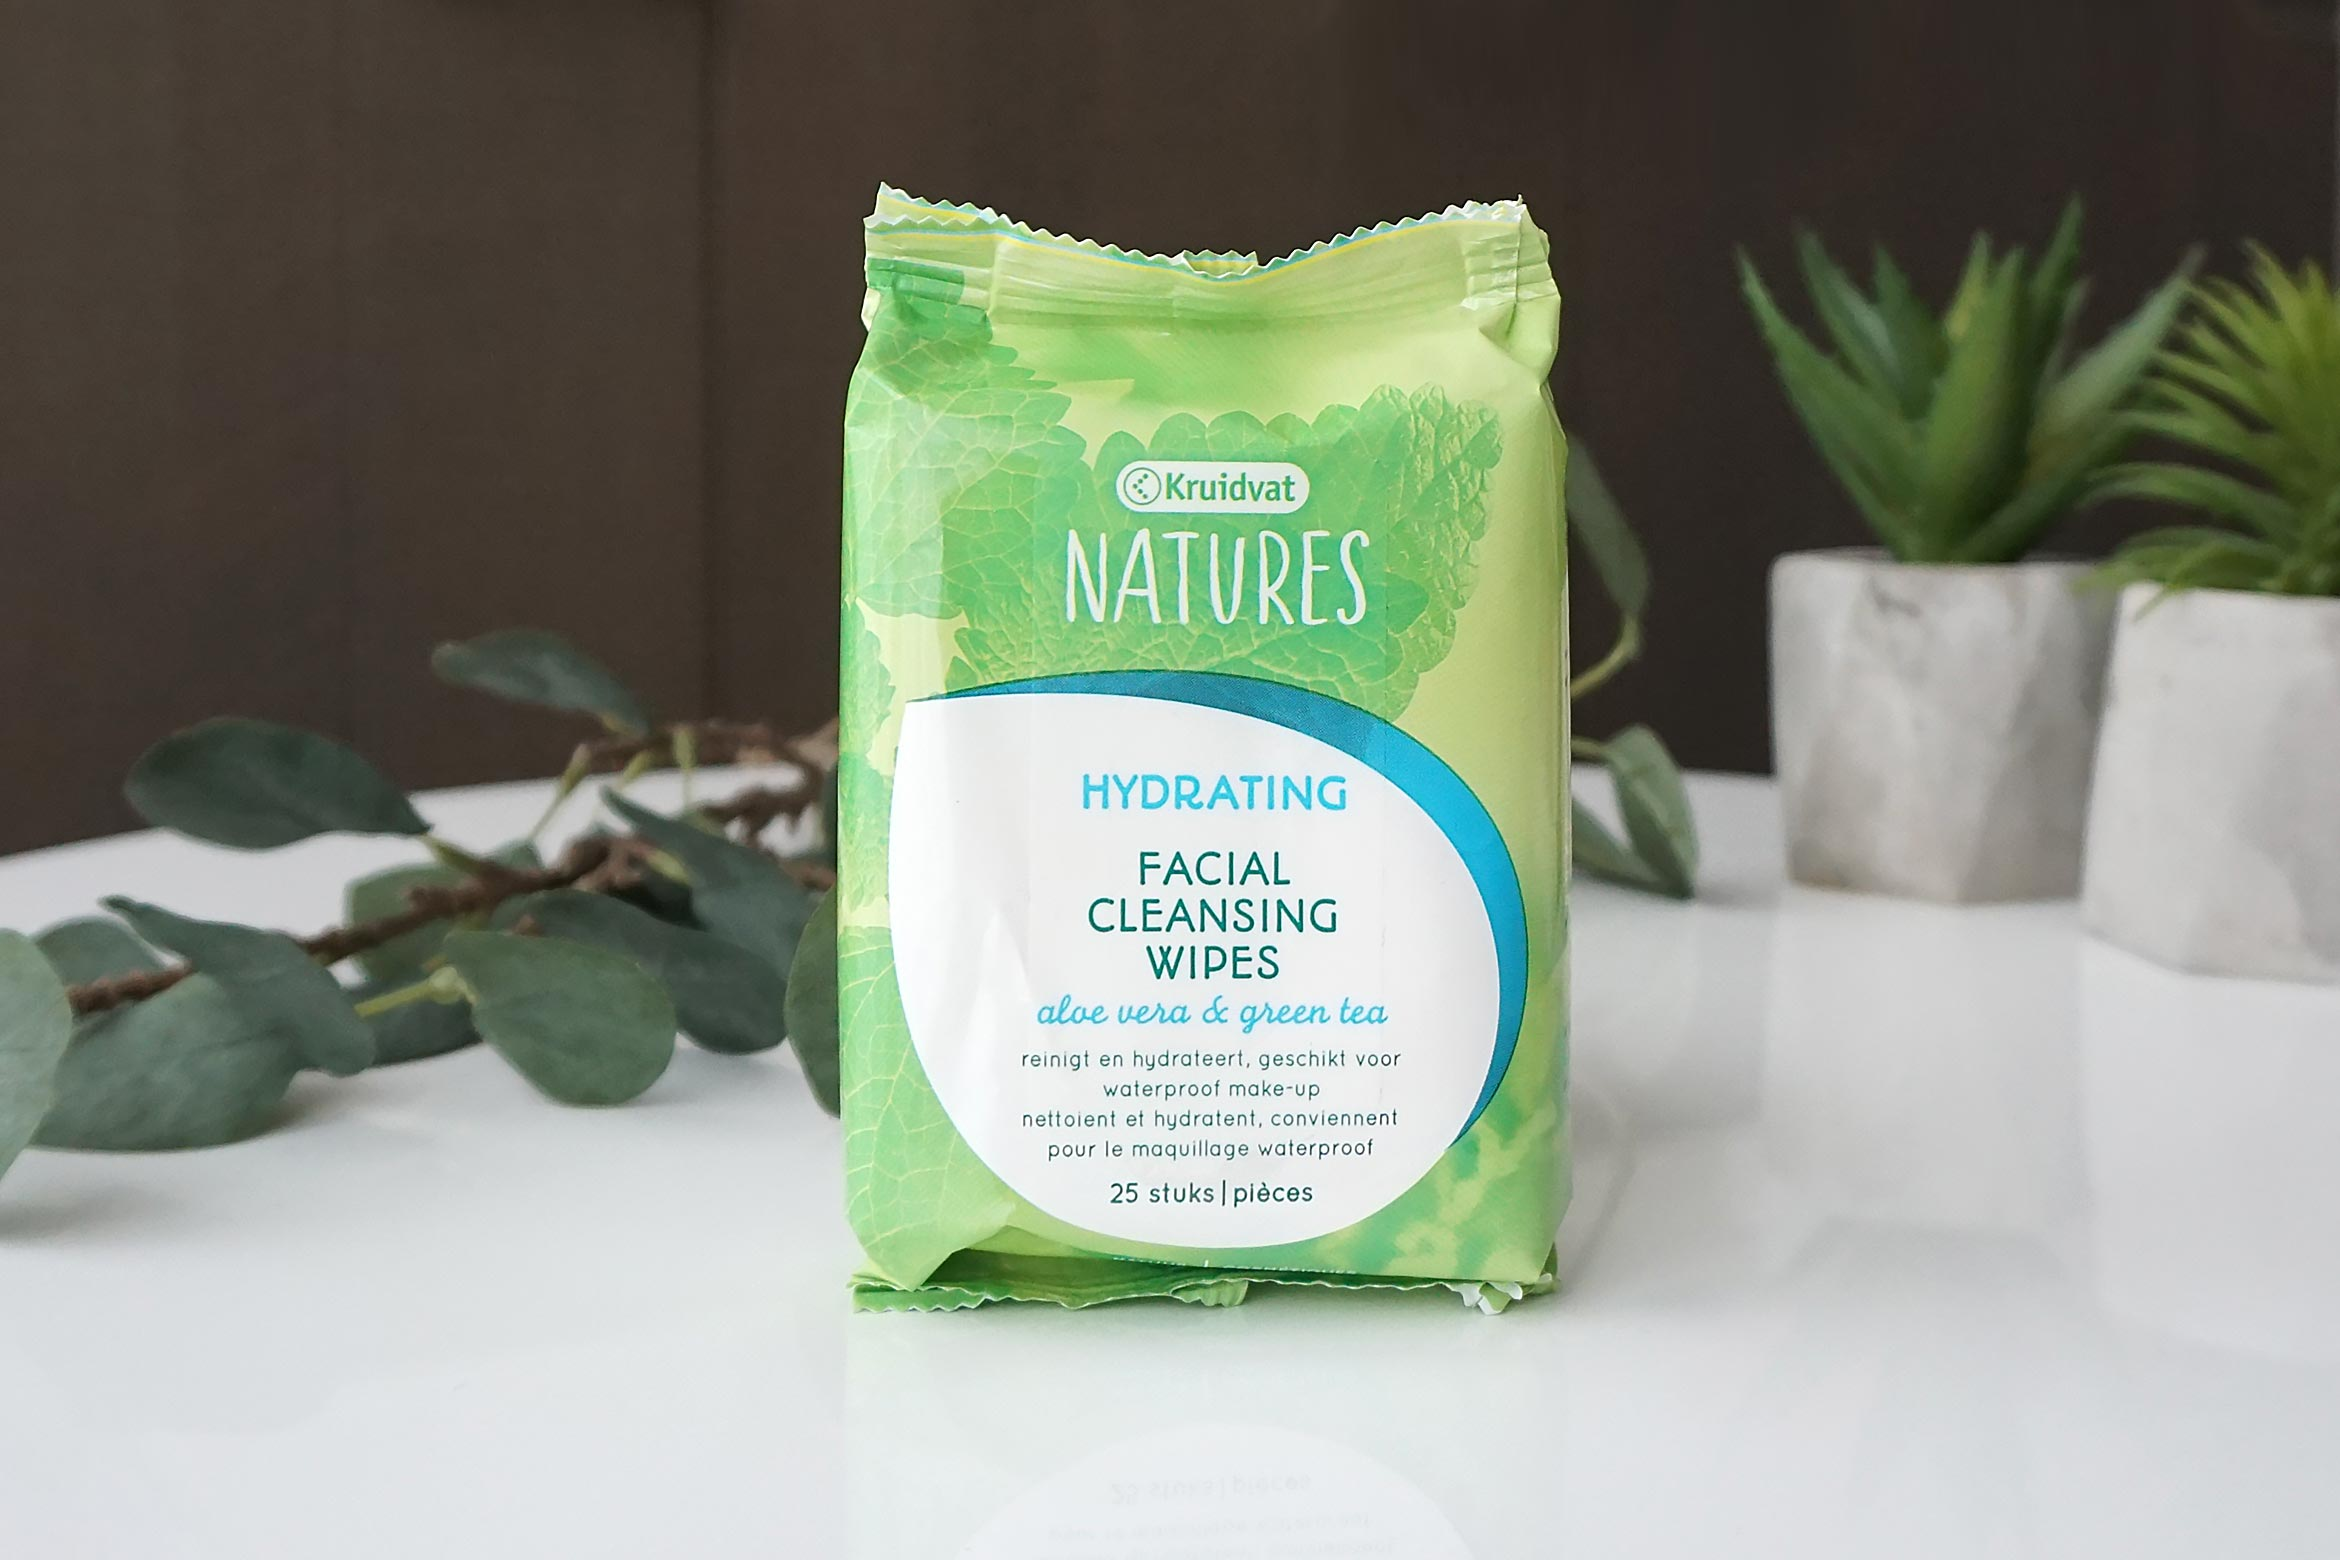 Kruidvat-Natures-Hydrating-Facial-Cleansing-Wipes-review-1